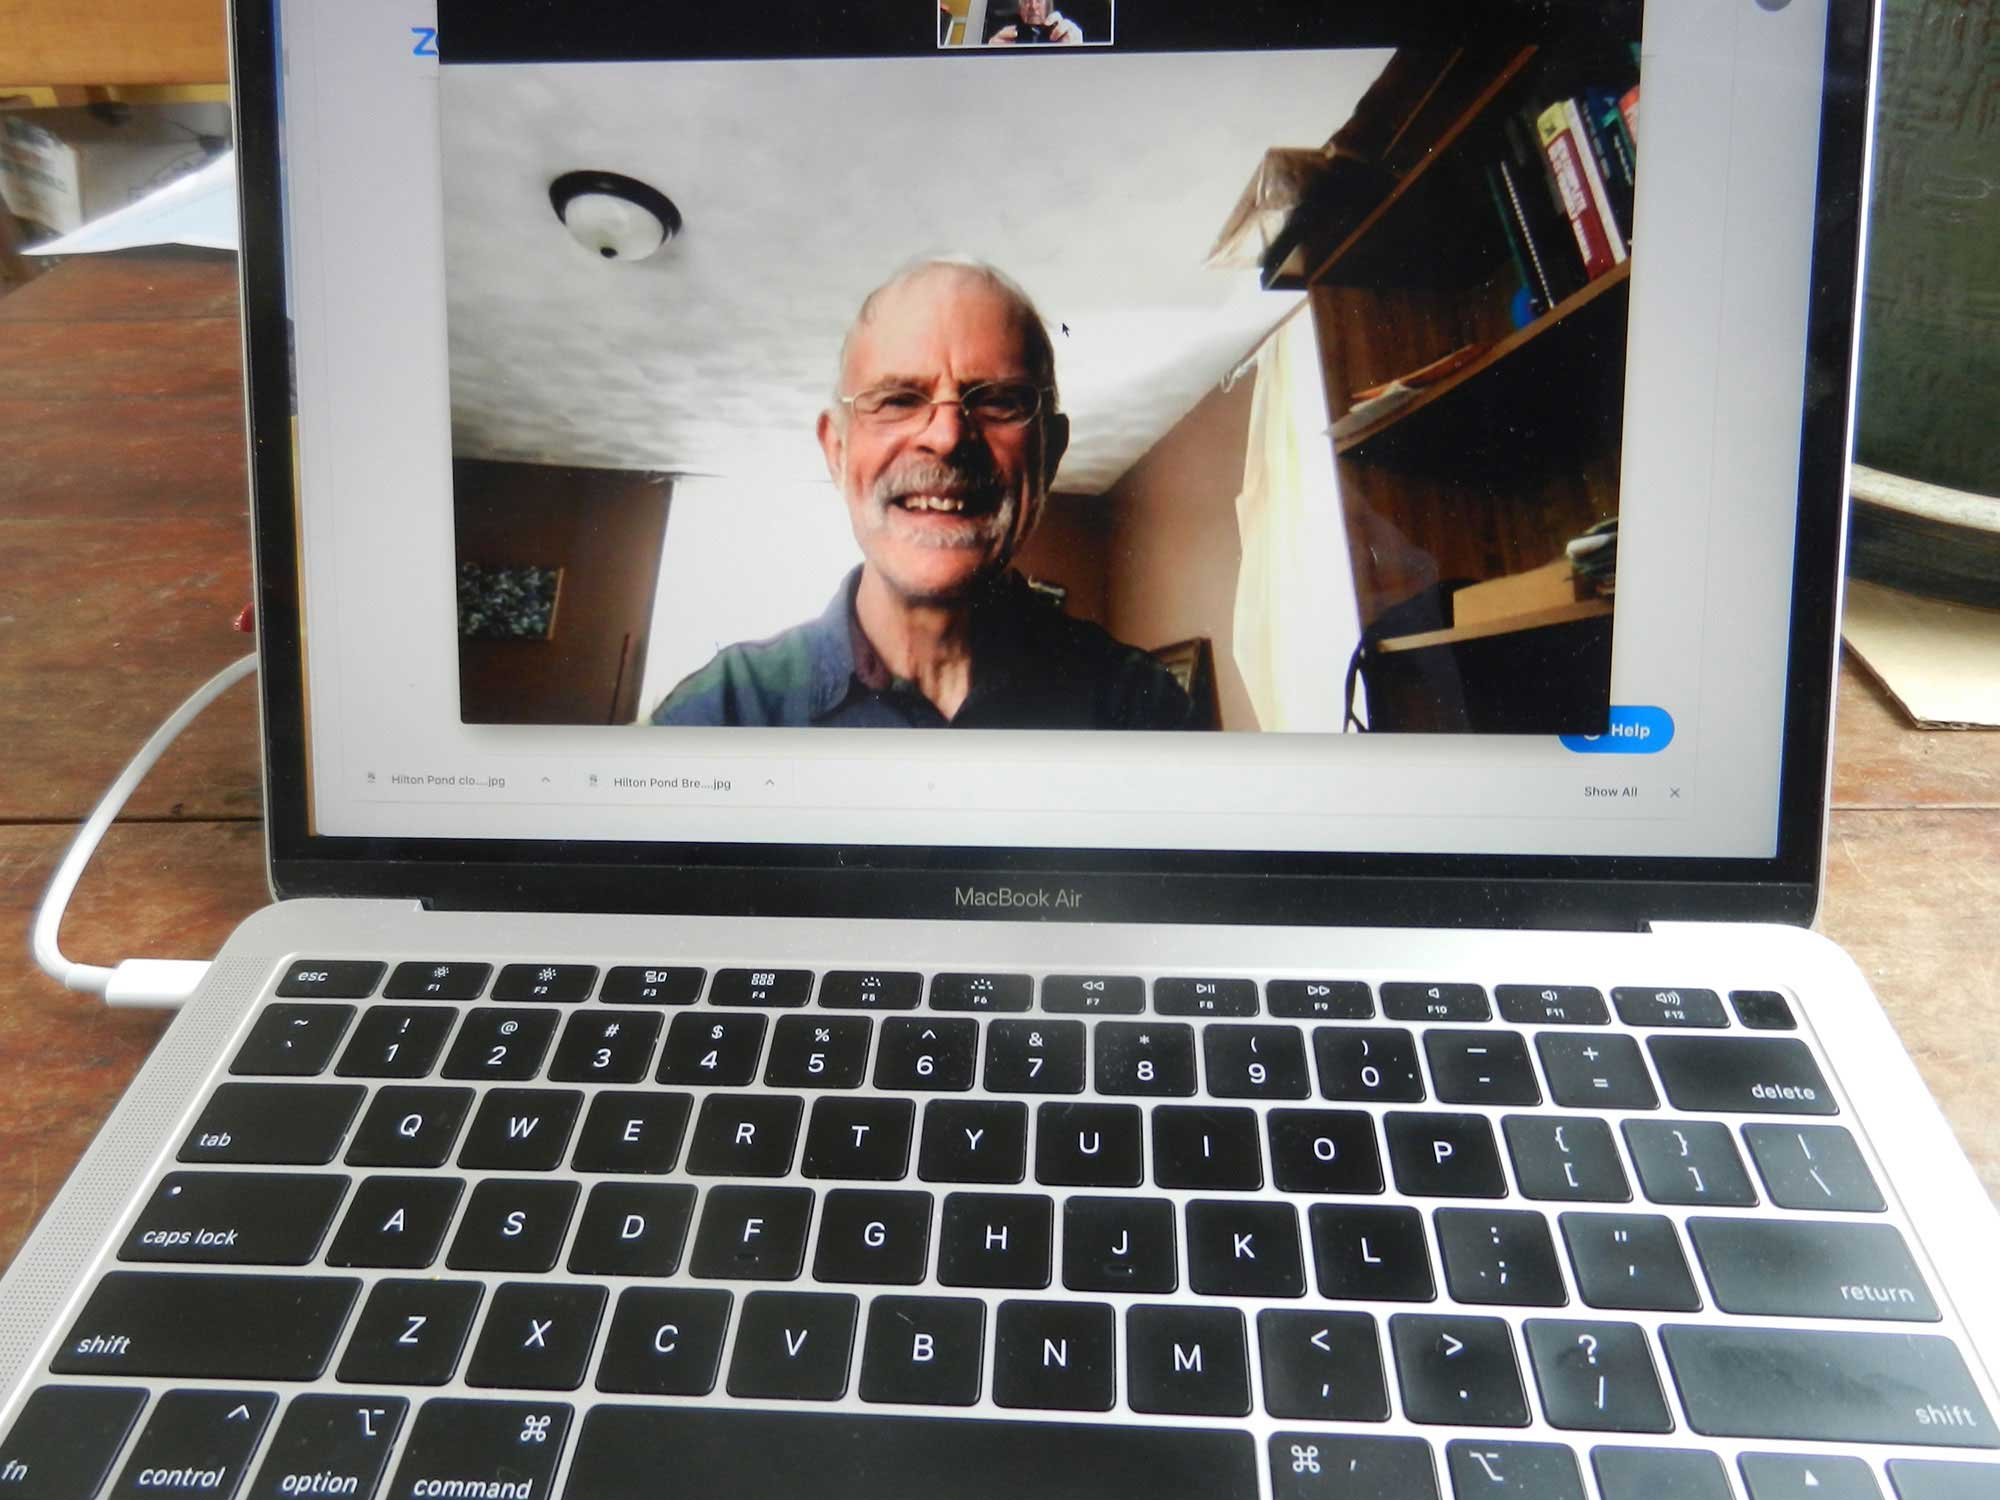 Dave Gott, Rainbow Elders Group Facilitator, smiling from a computer screen facing the camera